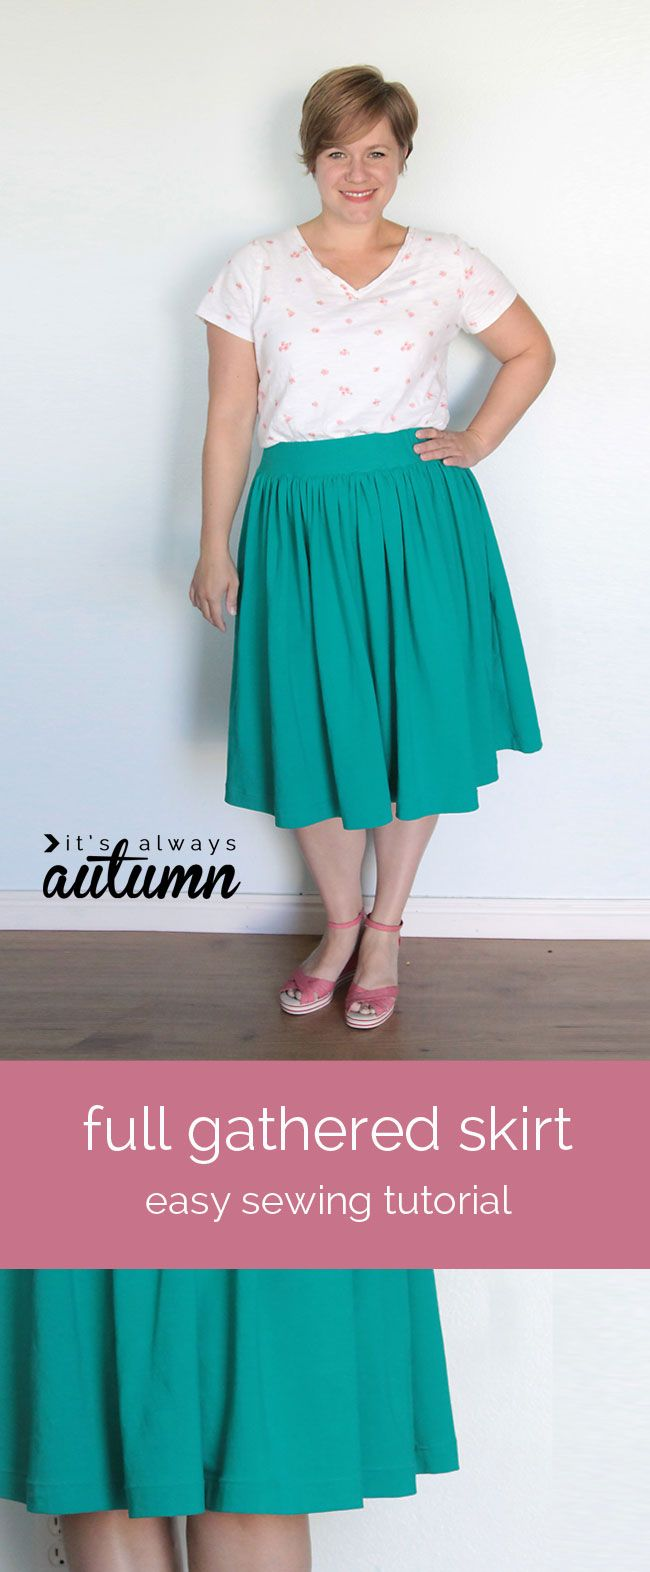 easy sewing tutorial for a flattering women's full gathered skirt - the elastic waist makes it comfy, but the flat waistband makes it look good!